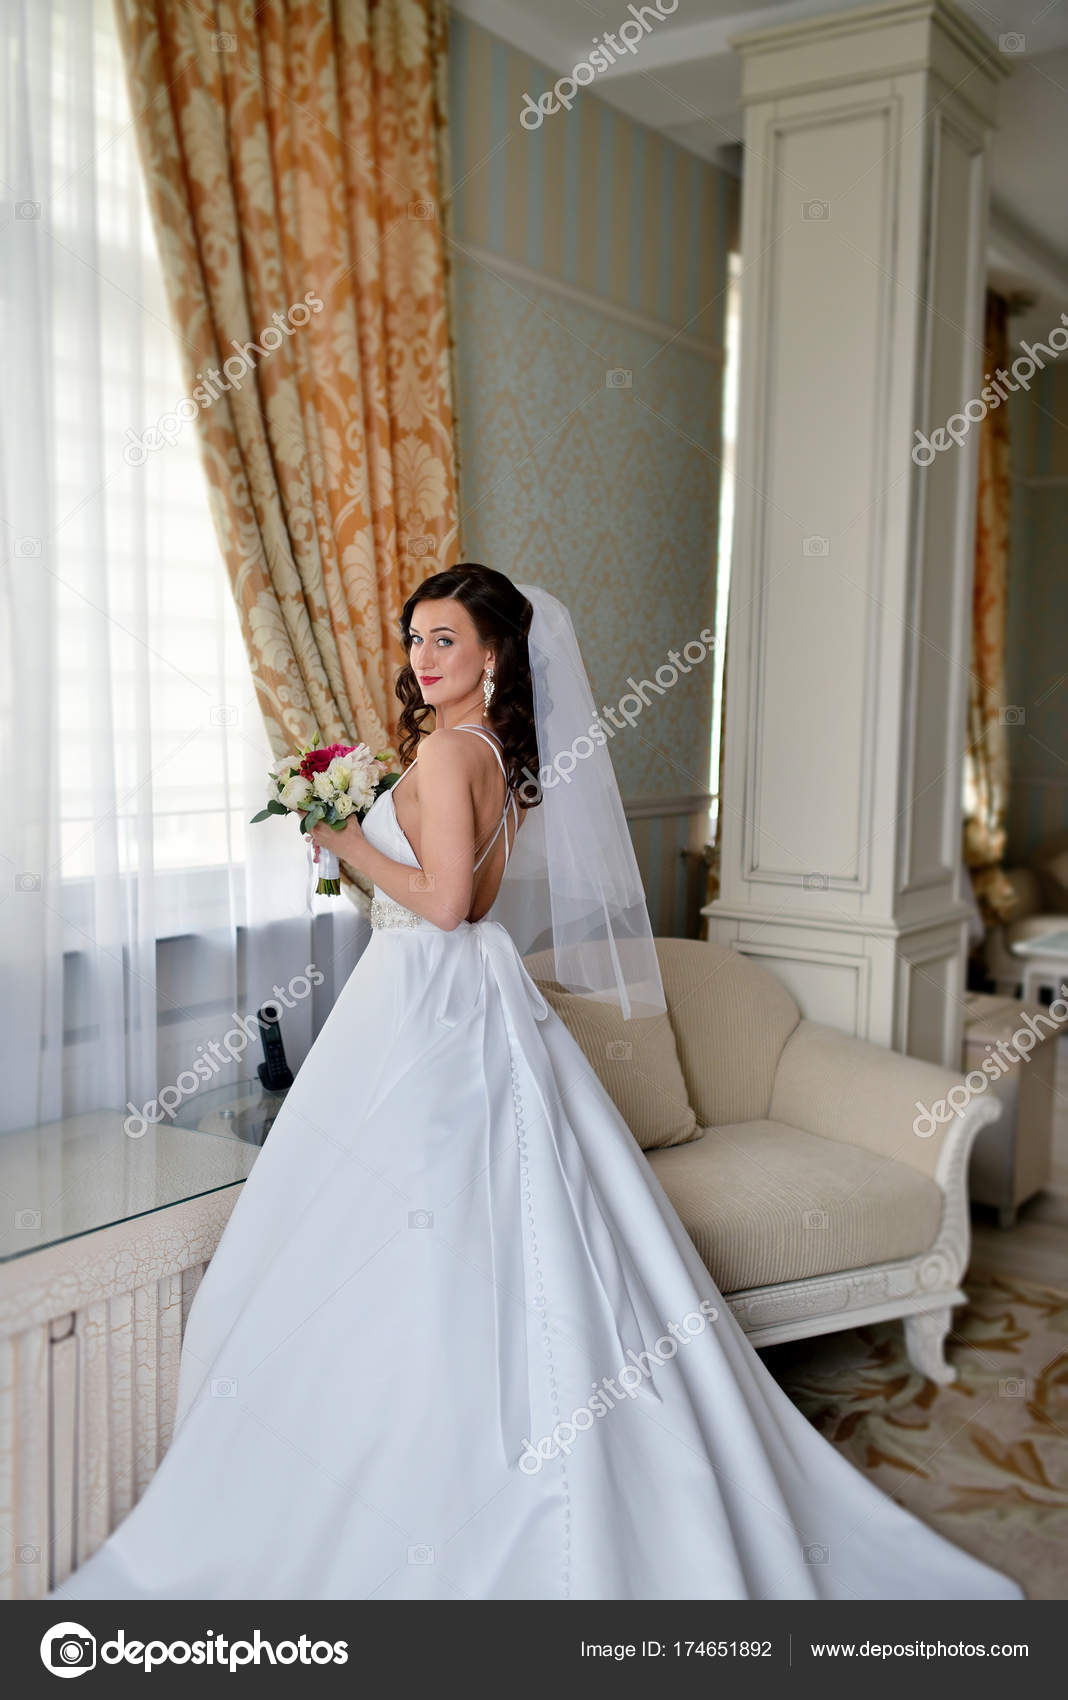 Beauty bride in bridal gown with bouquet and lace veil indoors ...